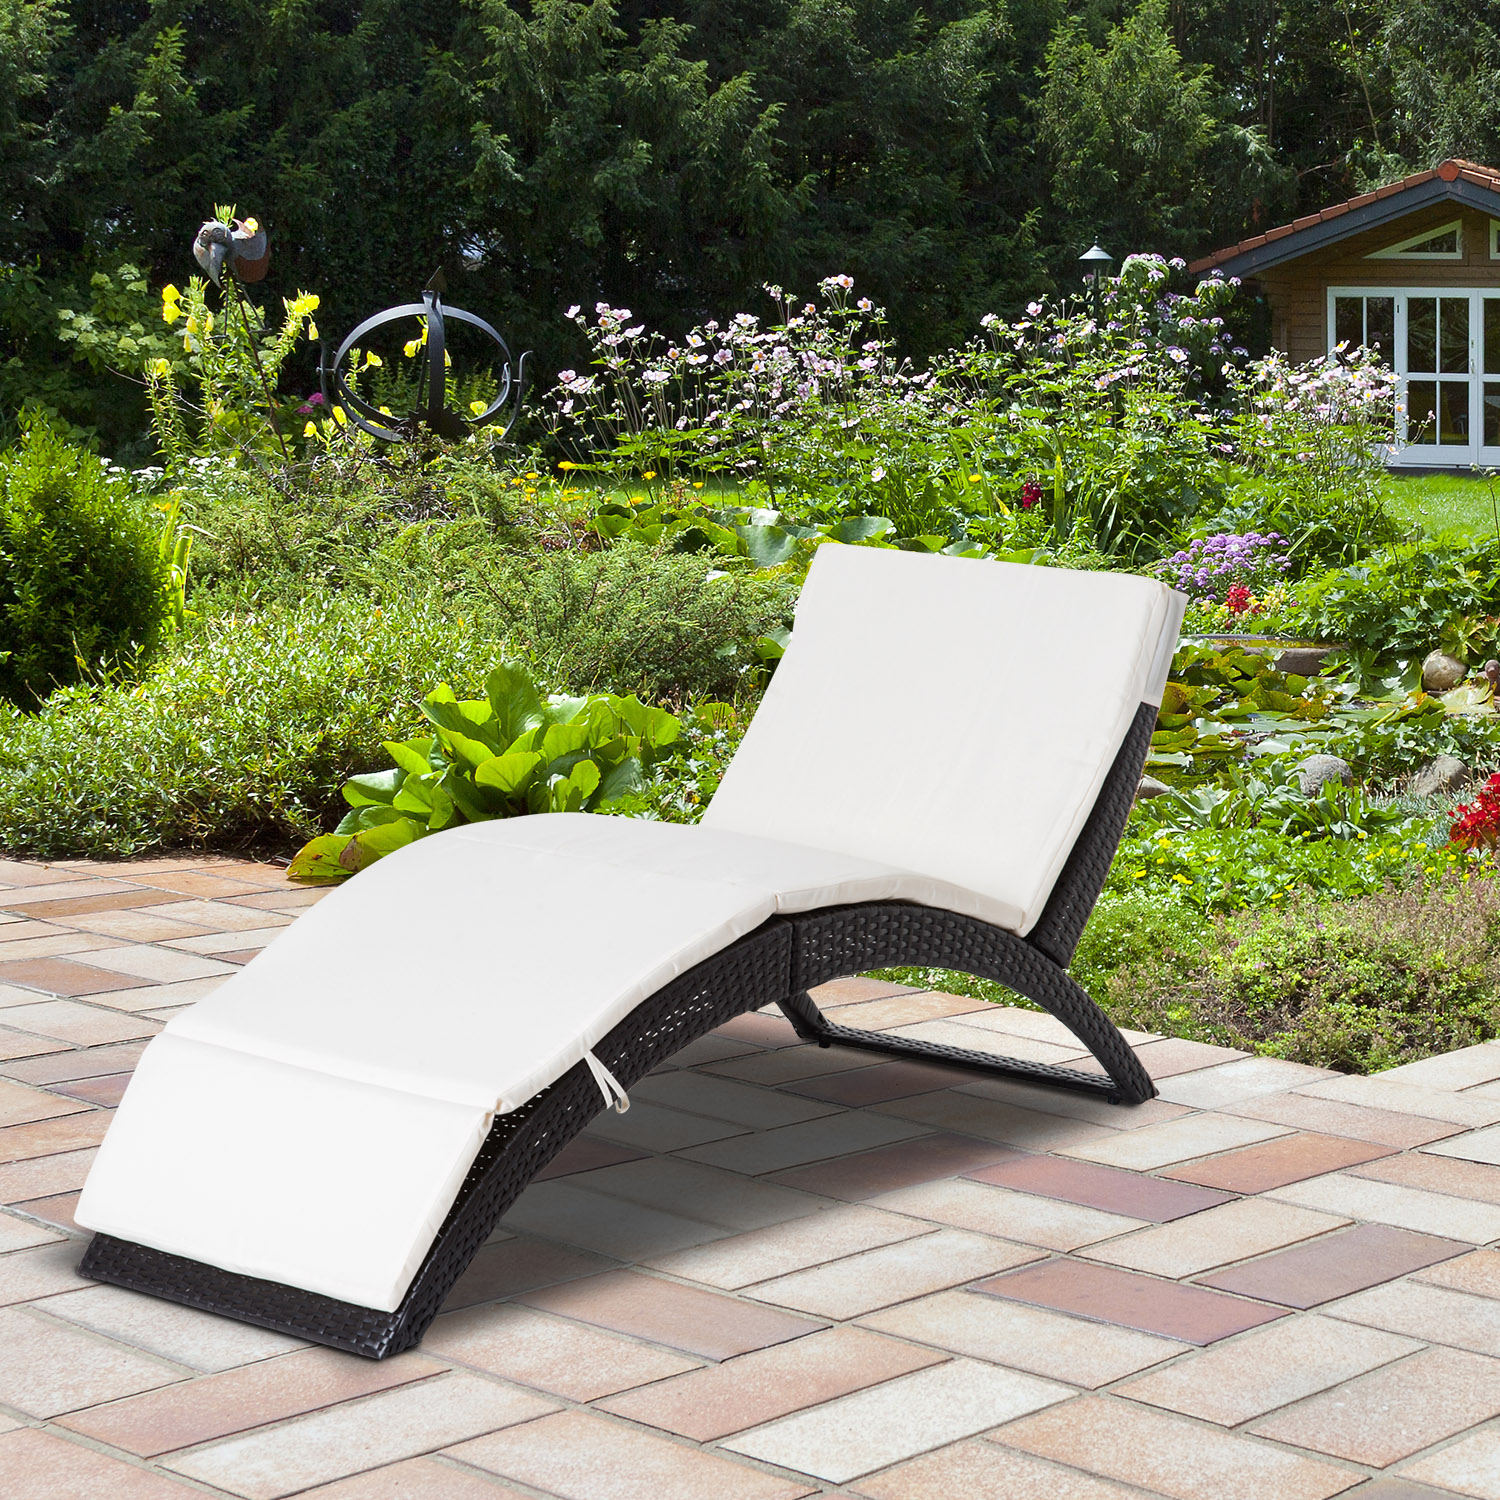 Outsunny Patio Wicker Lounger Recliner Bed Folding Outdoor Garden Chaise With Cushion Sun Loungers Aosom Canada